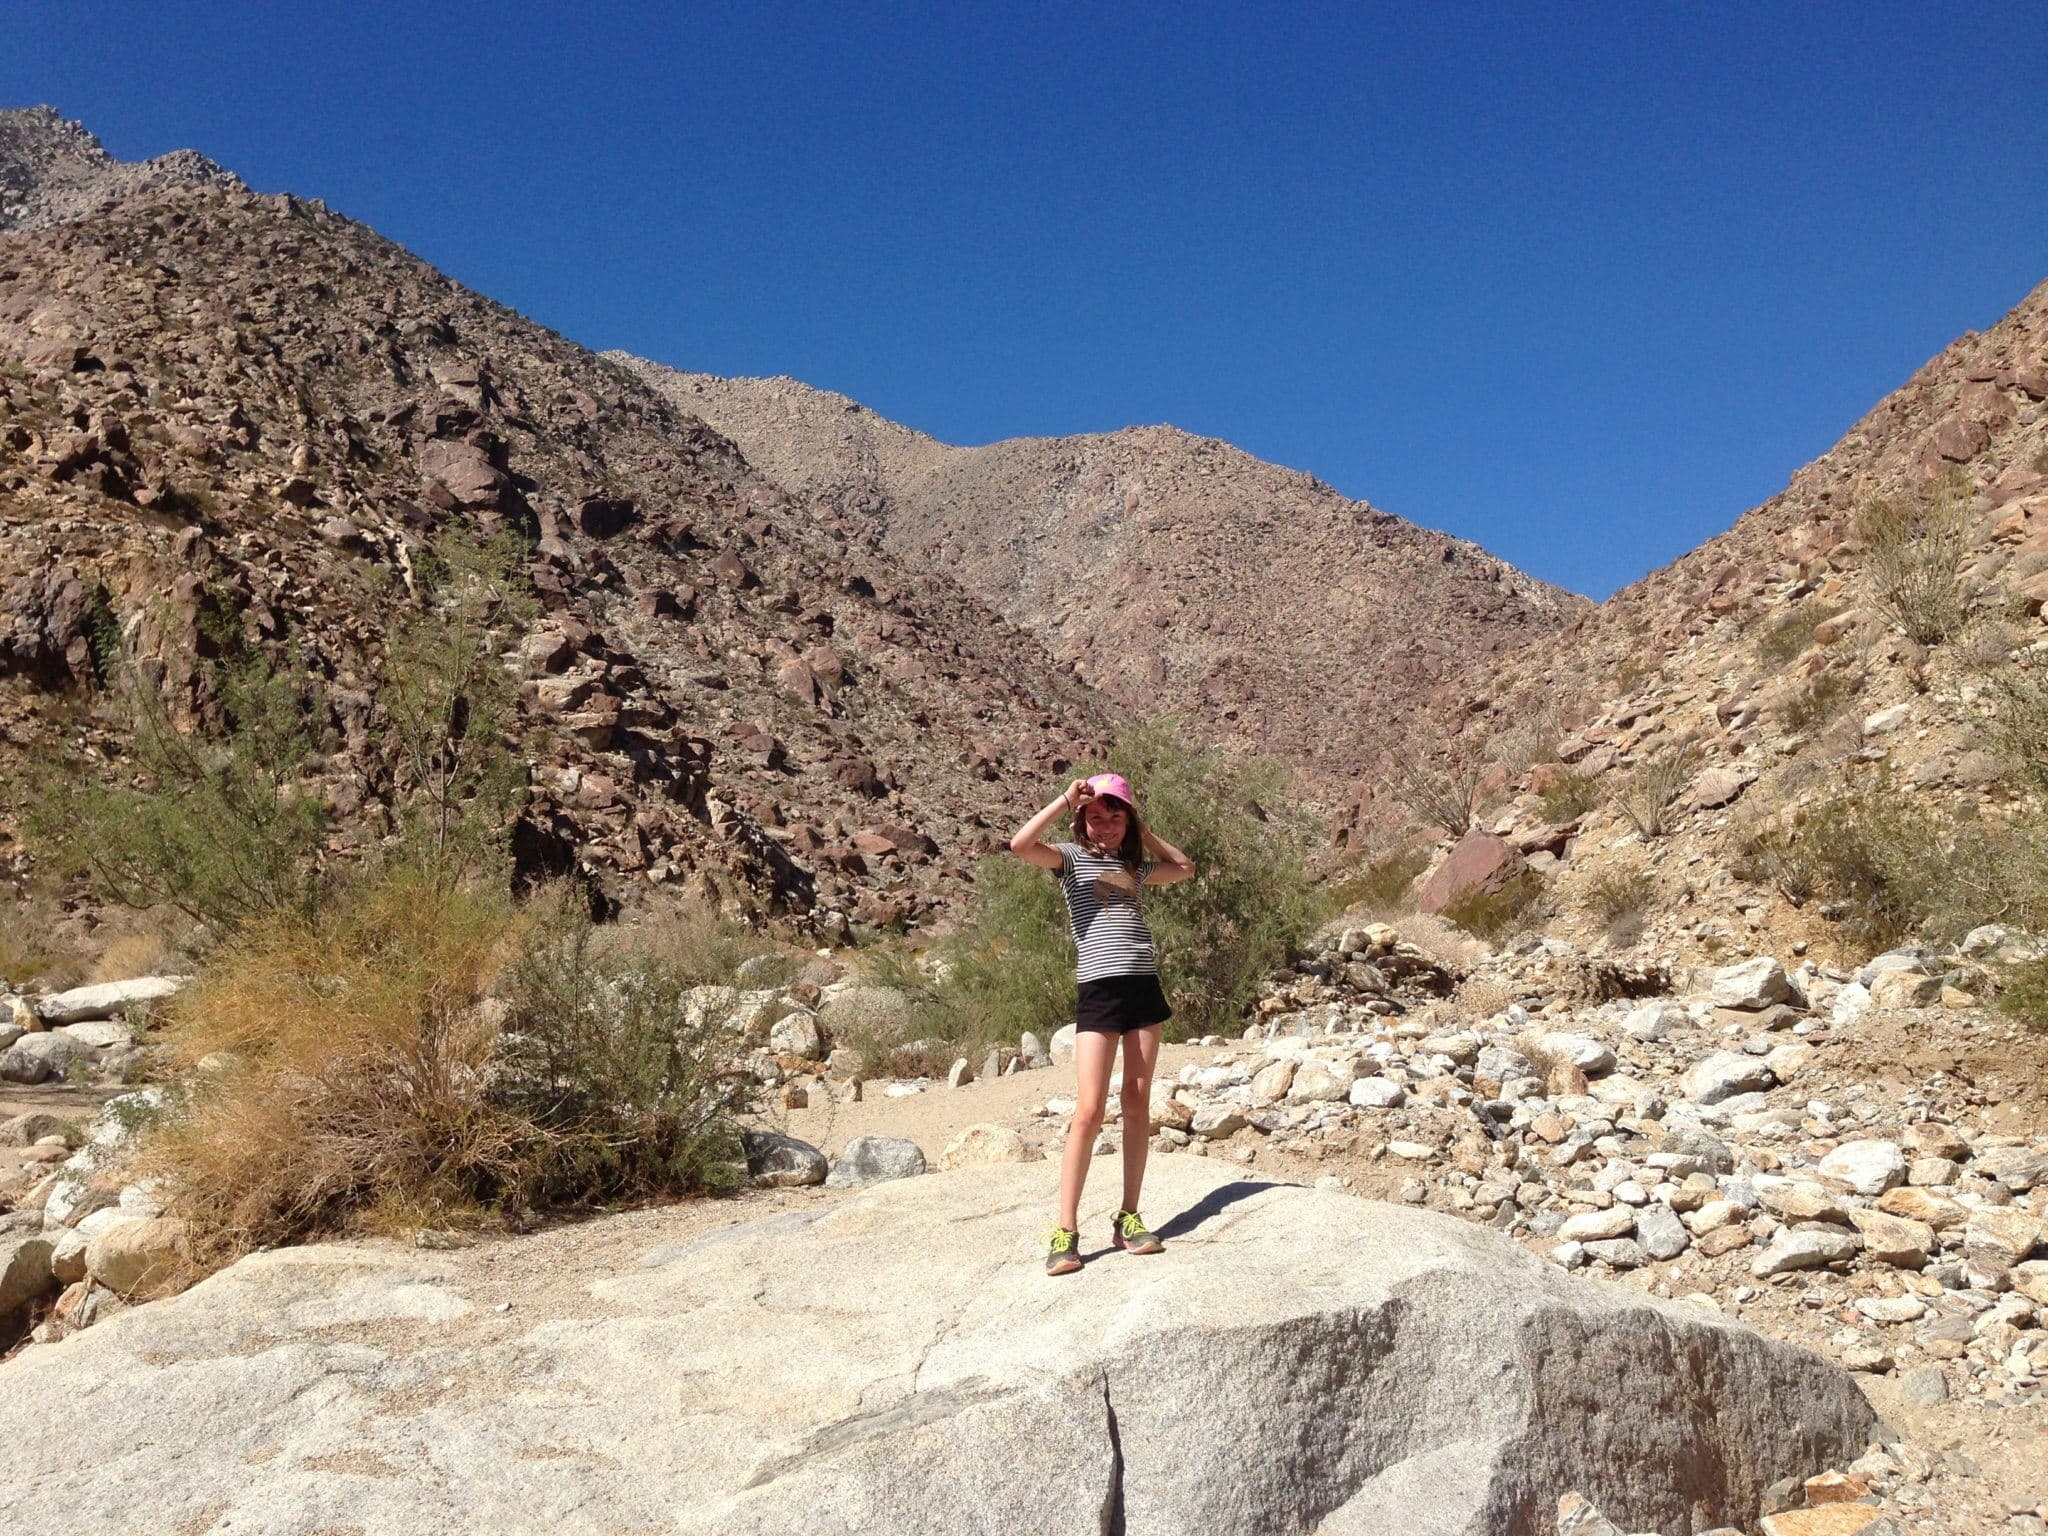 Hiking Anza Borrego Desert State Park in California ~ How to Connect Kids with Nature on Family Vacation